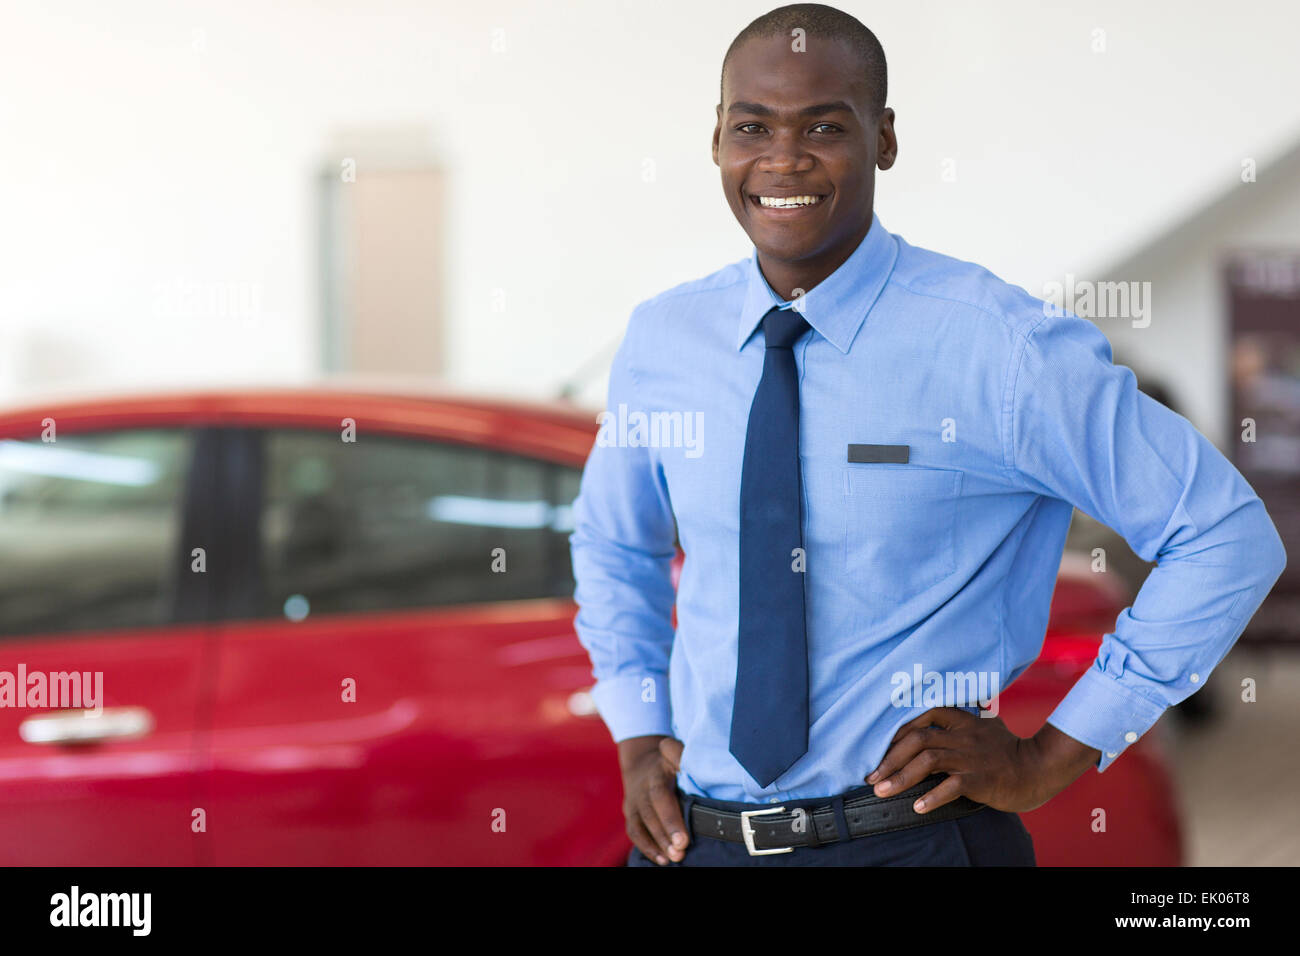 African American vehicle sales consultant inside showroom - Stock Image